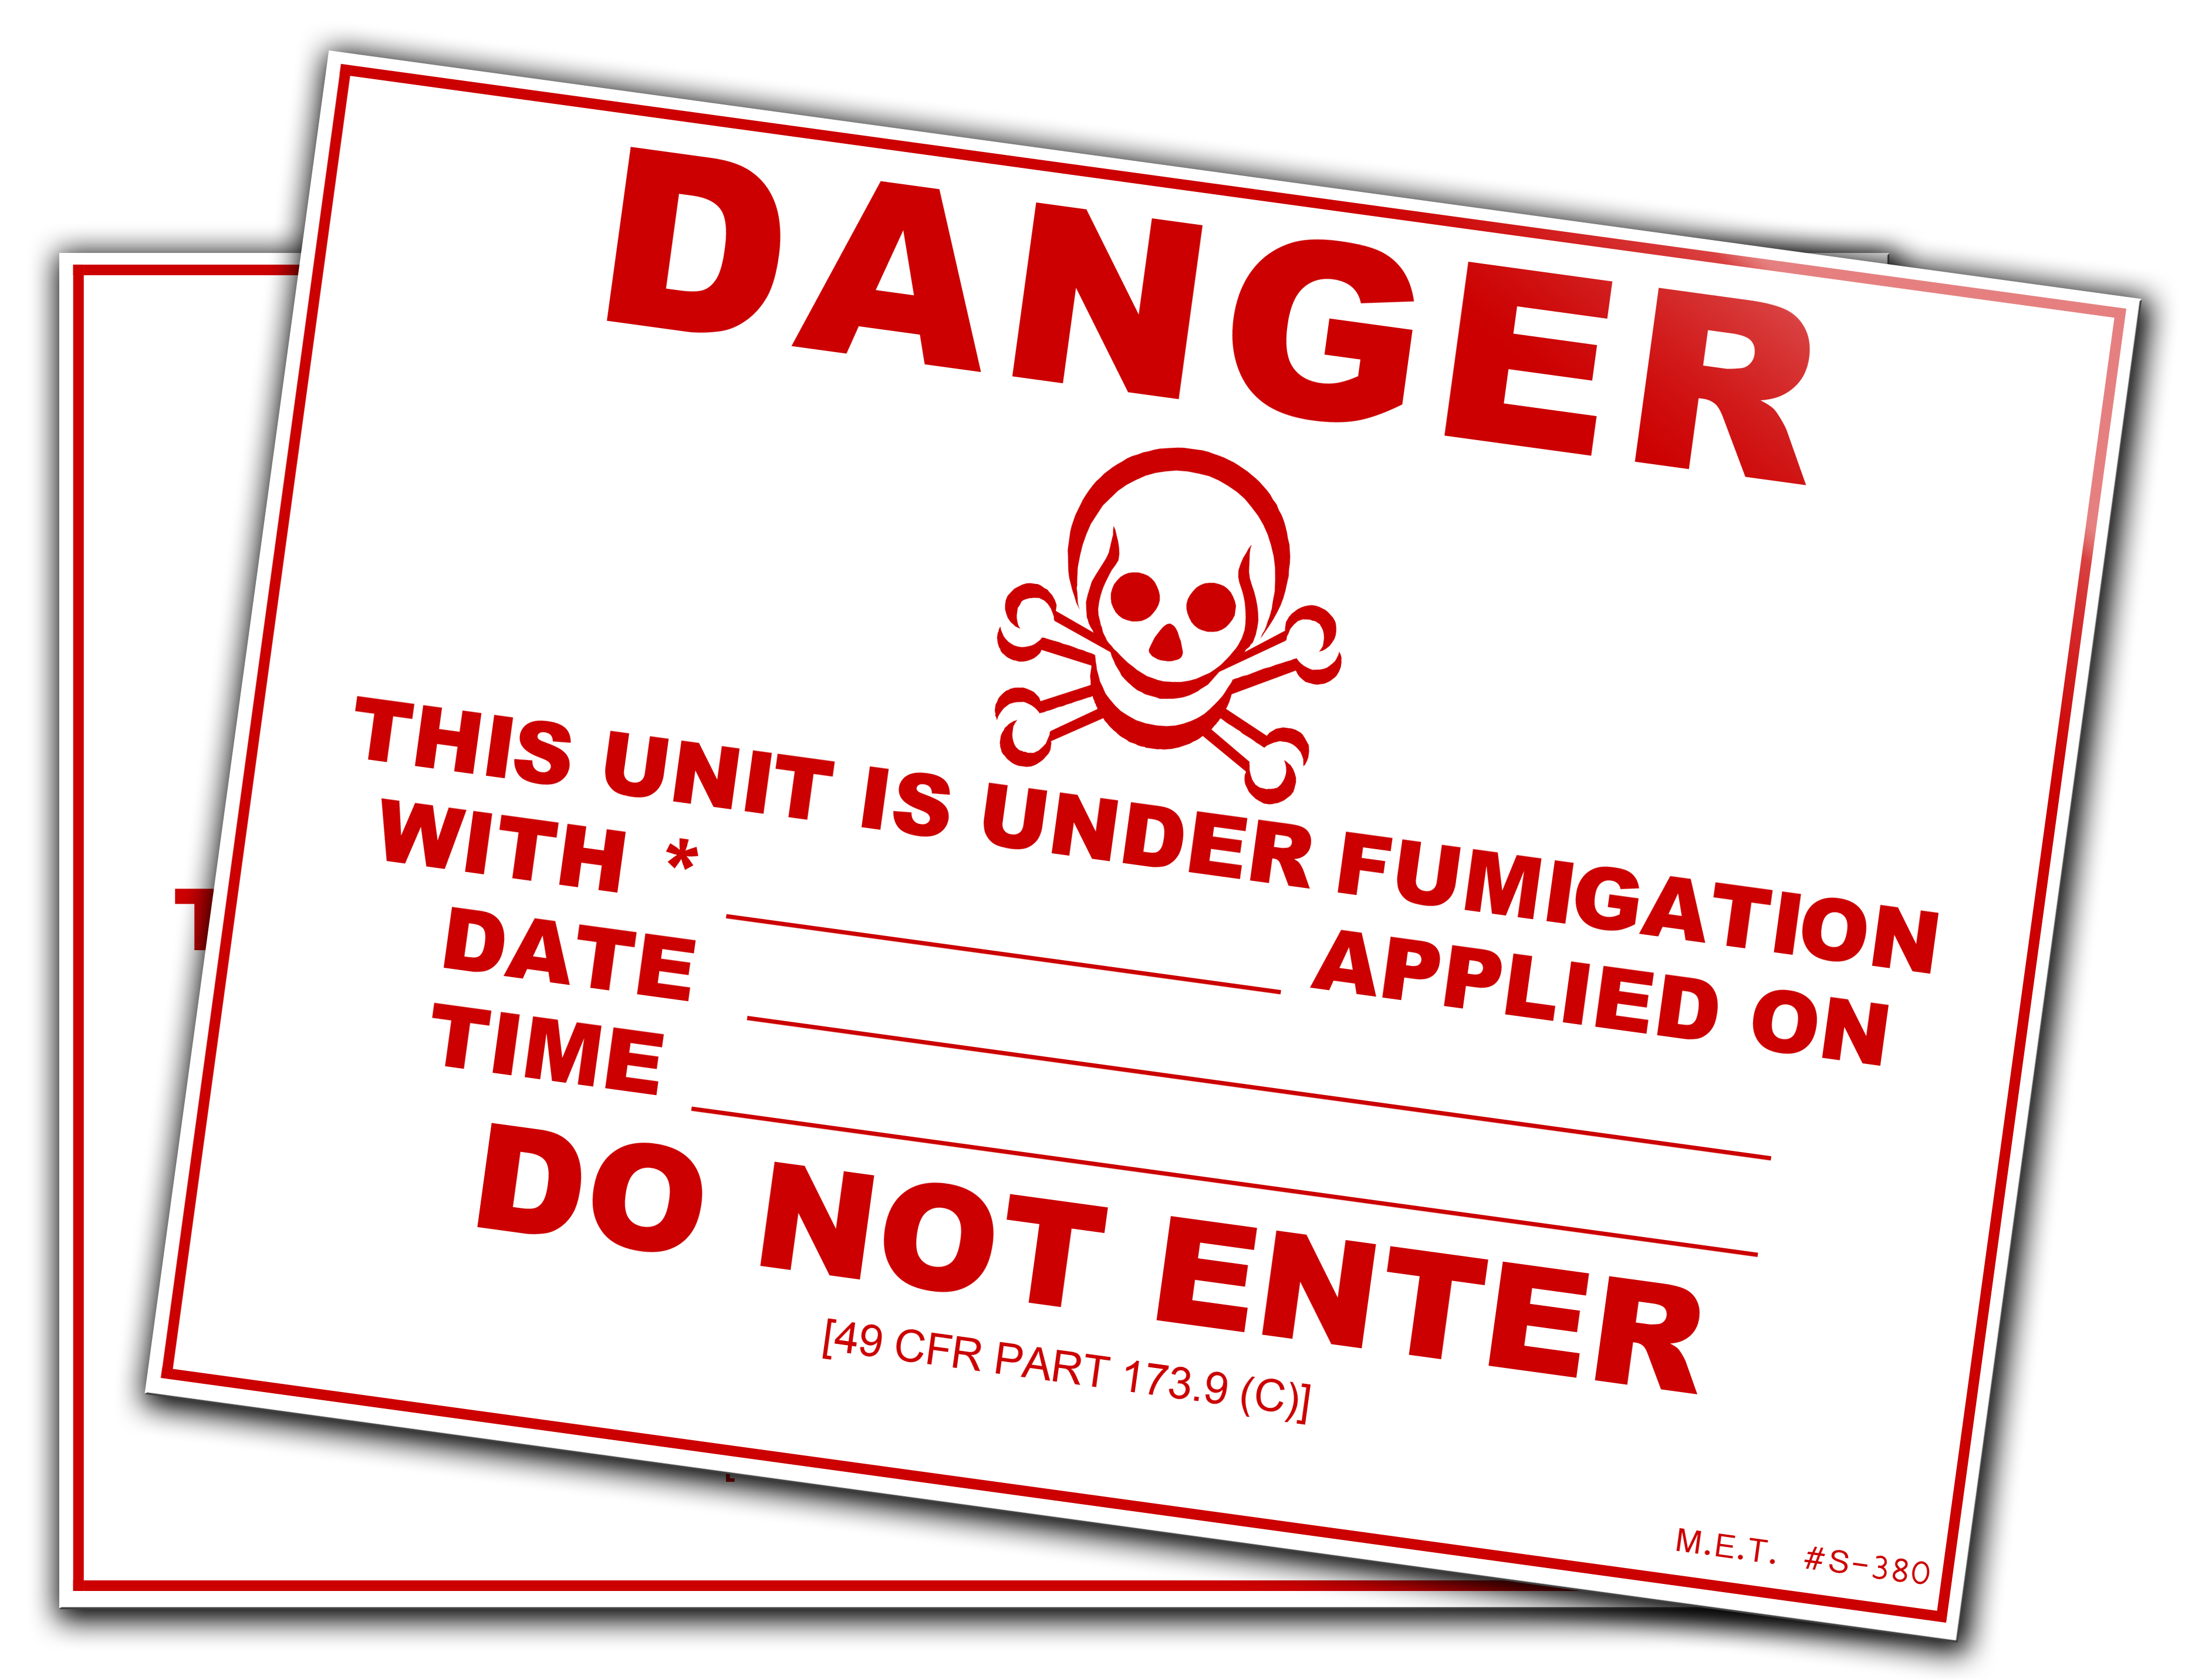 DANGER THIS UNIT IS UNDER FUMIGATION WITH *______APPLIED ON DATE_____ TIME_____ DO NOT ENTER [49 CFR PART 173.9 (C)] 13w x 10h